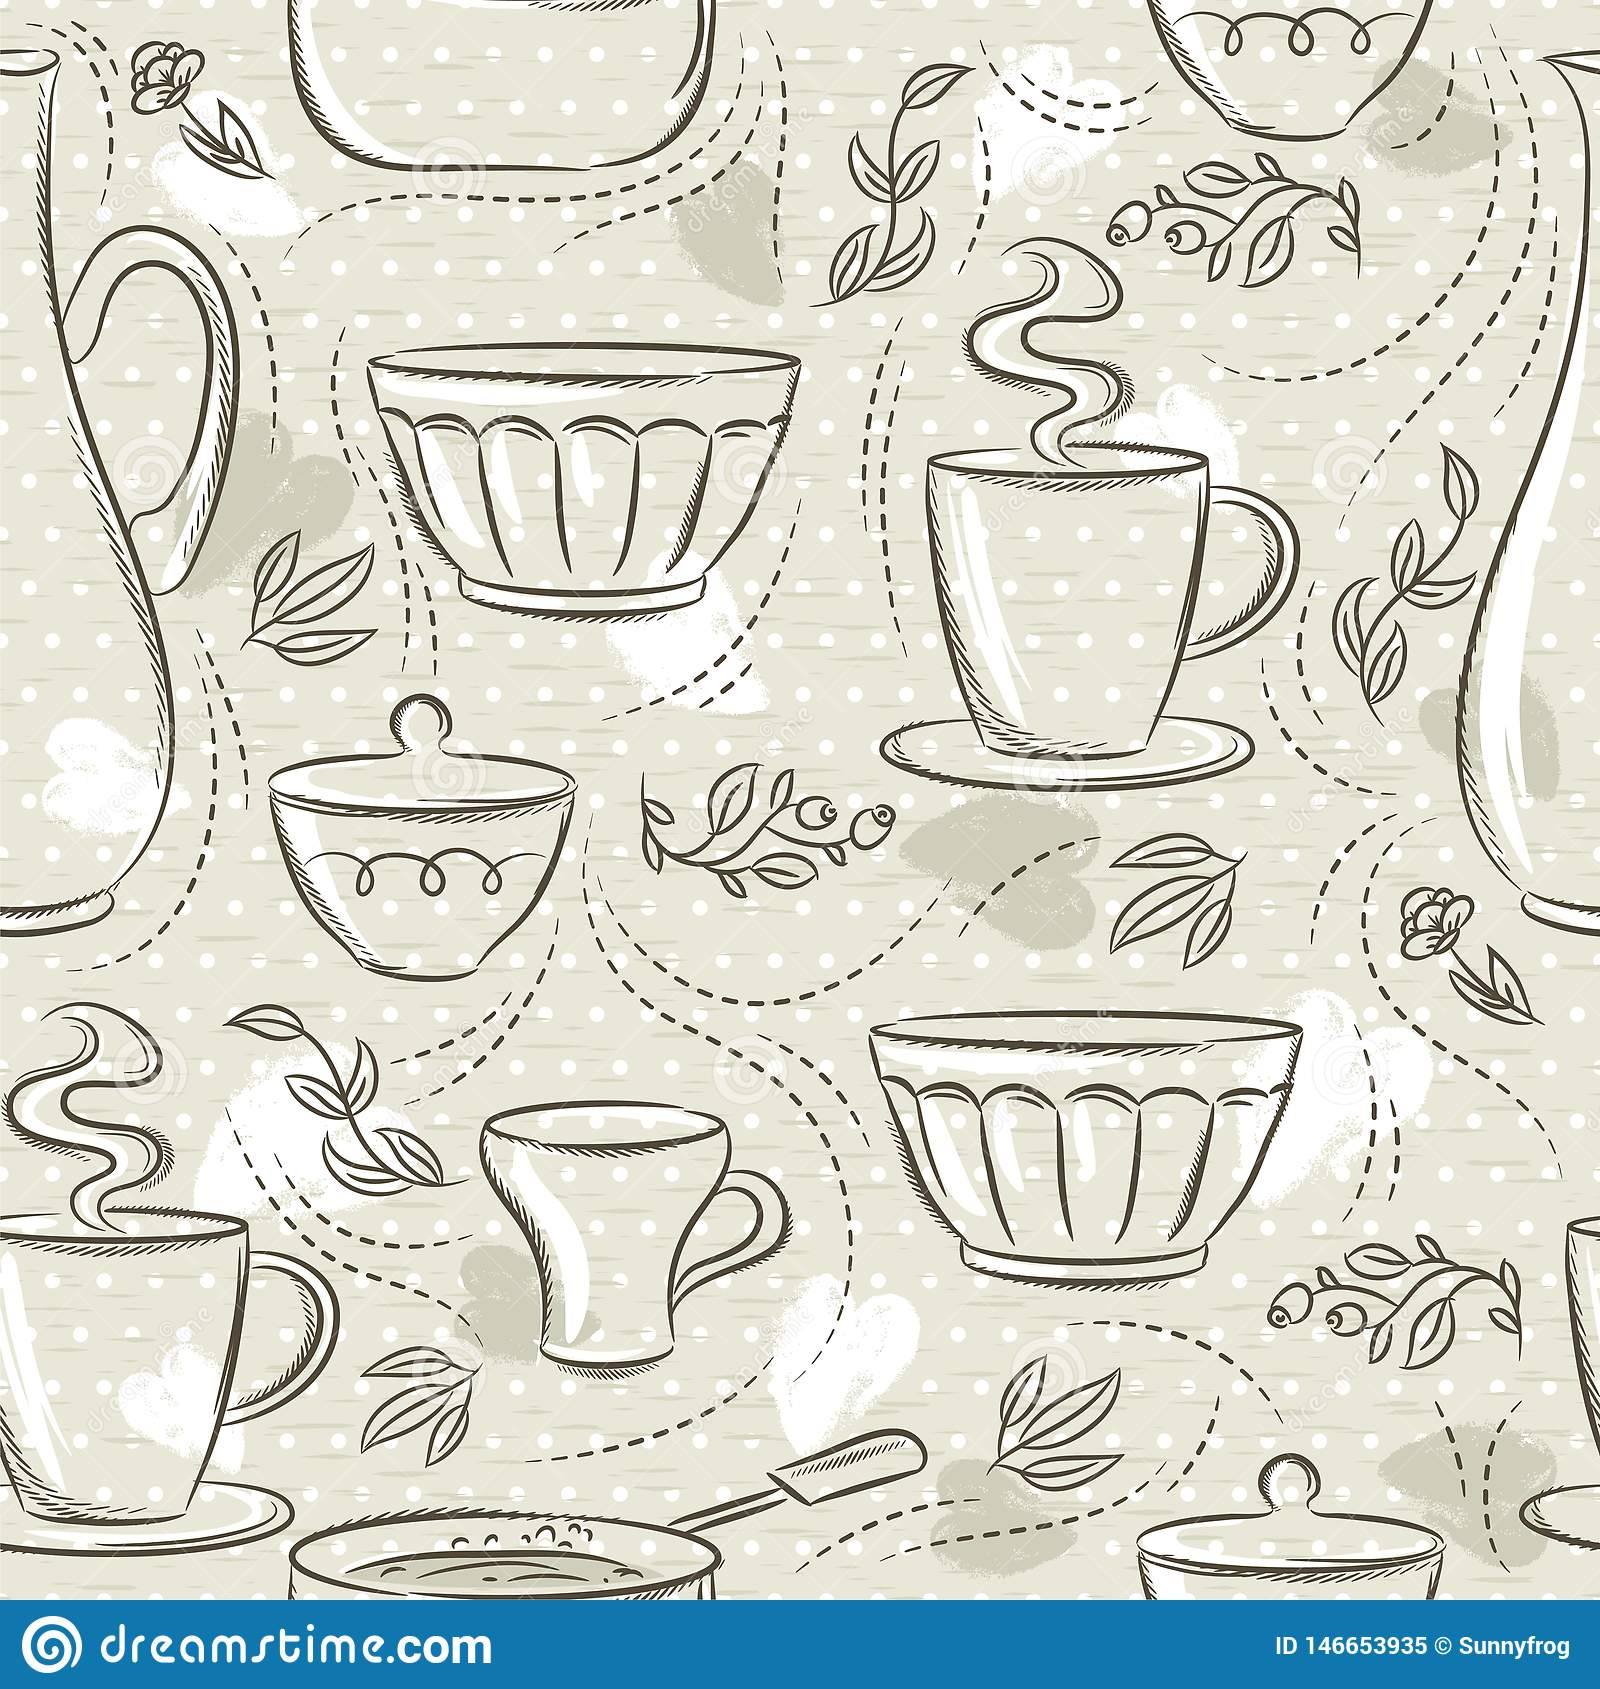 Beige seamless patterns with different tableware, flower, cup, pan. Ideal for printing onto fabric and paper or scrap booking